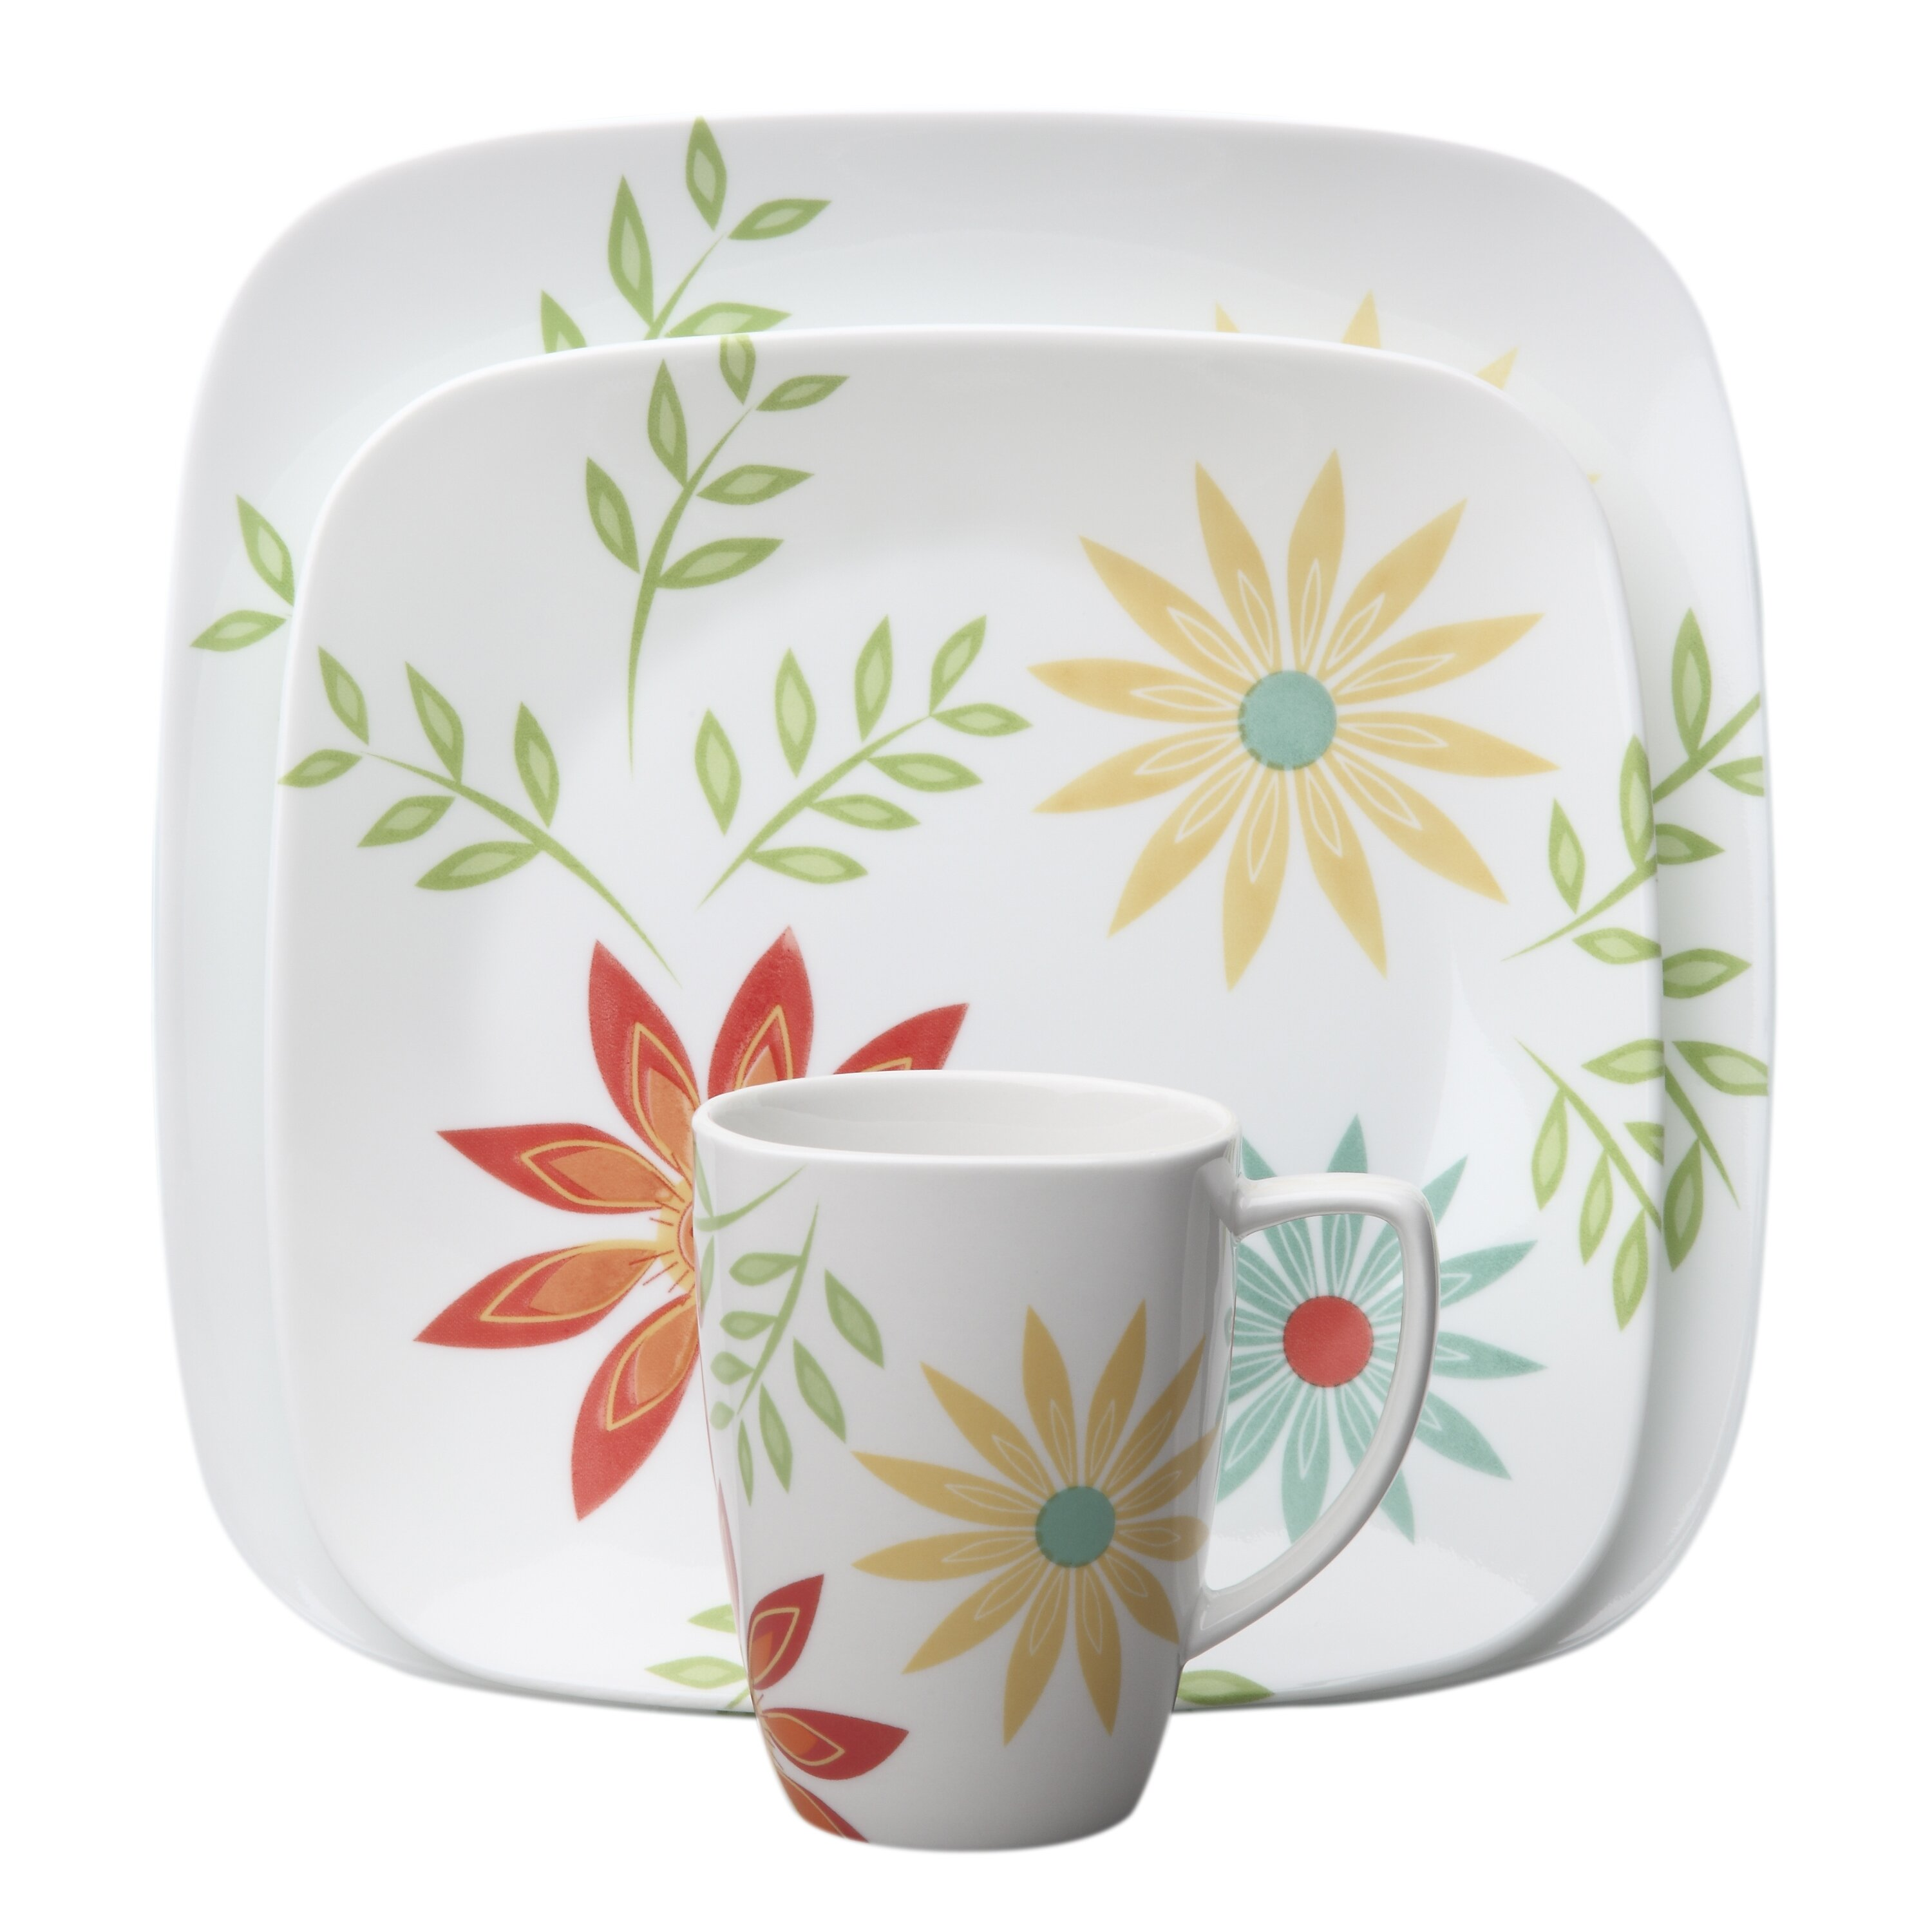 Microwave Safe Dinnerware & Fine China Collections. One of the wonderful features of microwave cooking is that you can cook in the utensil you are going to serve in. Isn't it wonderful that so many popular lines of dinnerware are also microwave-safe?